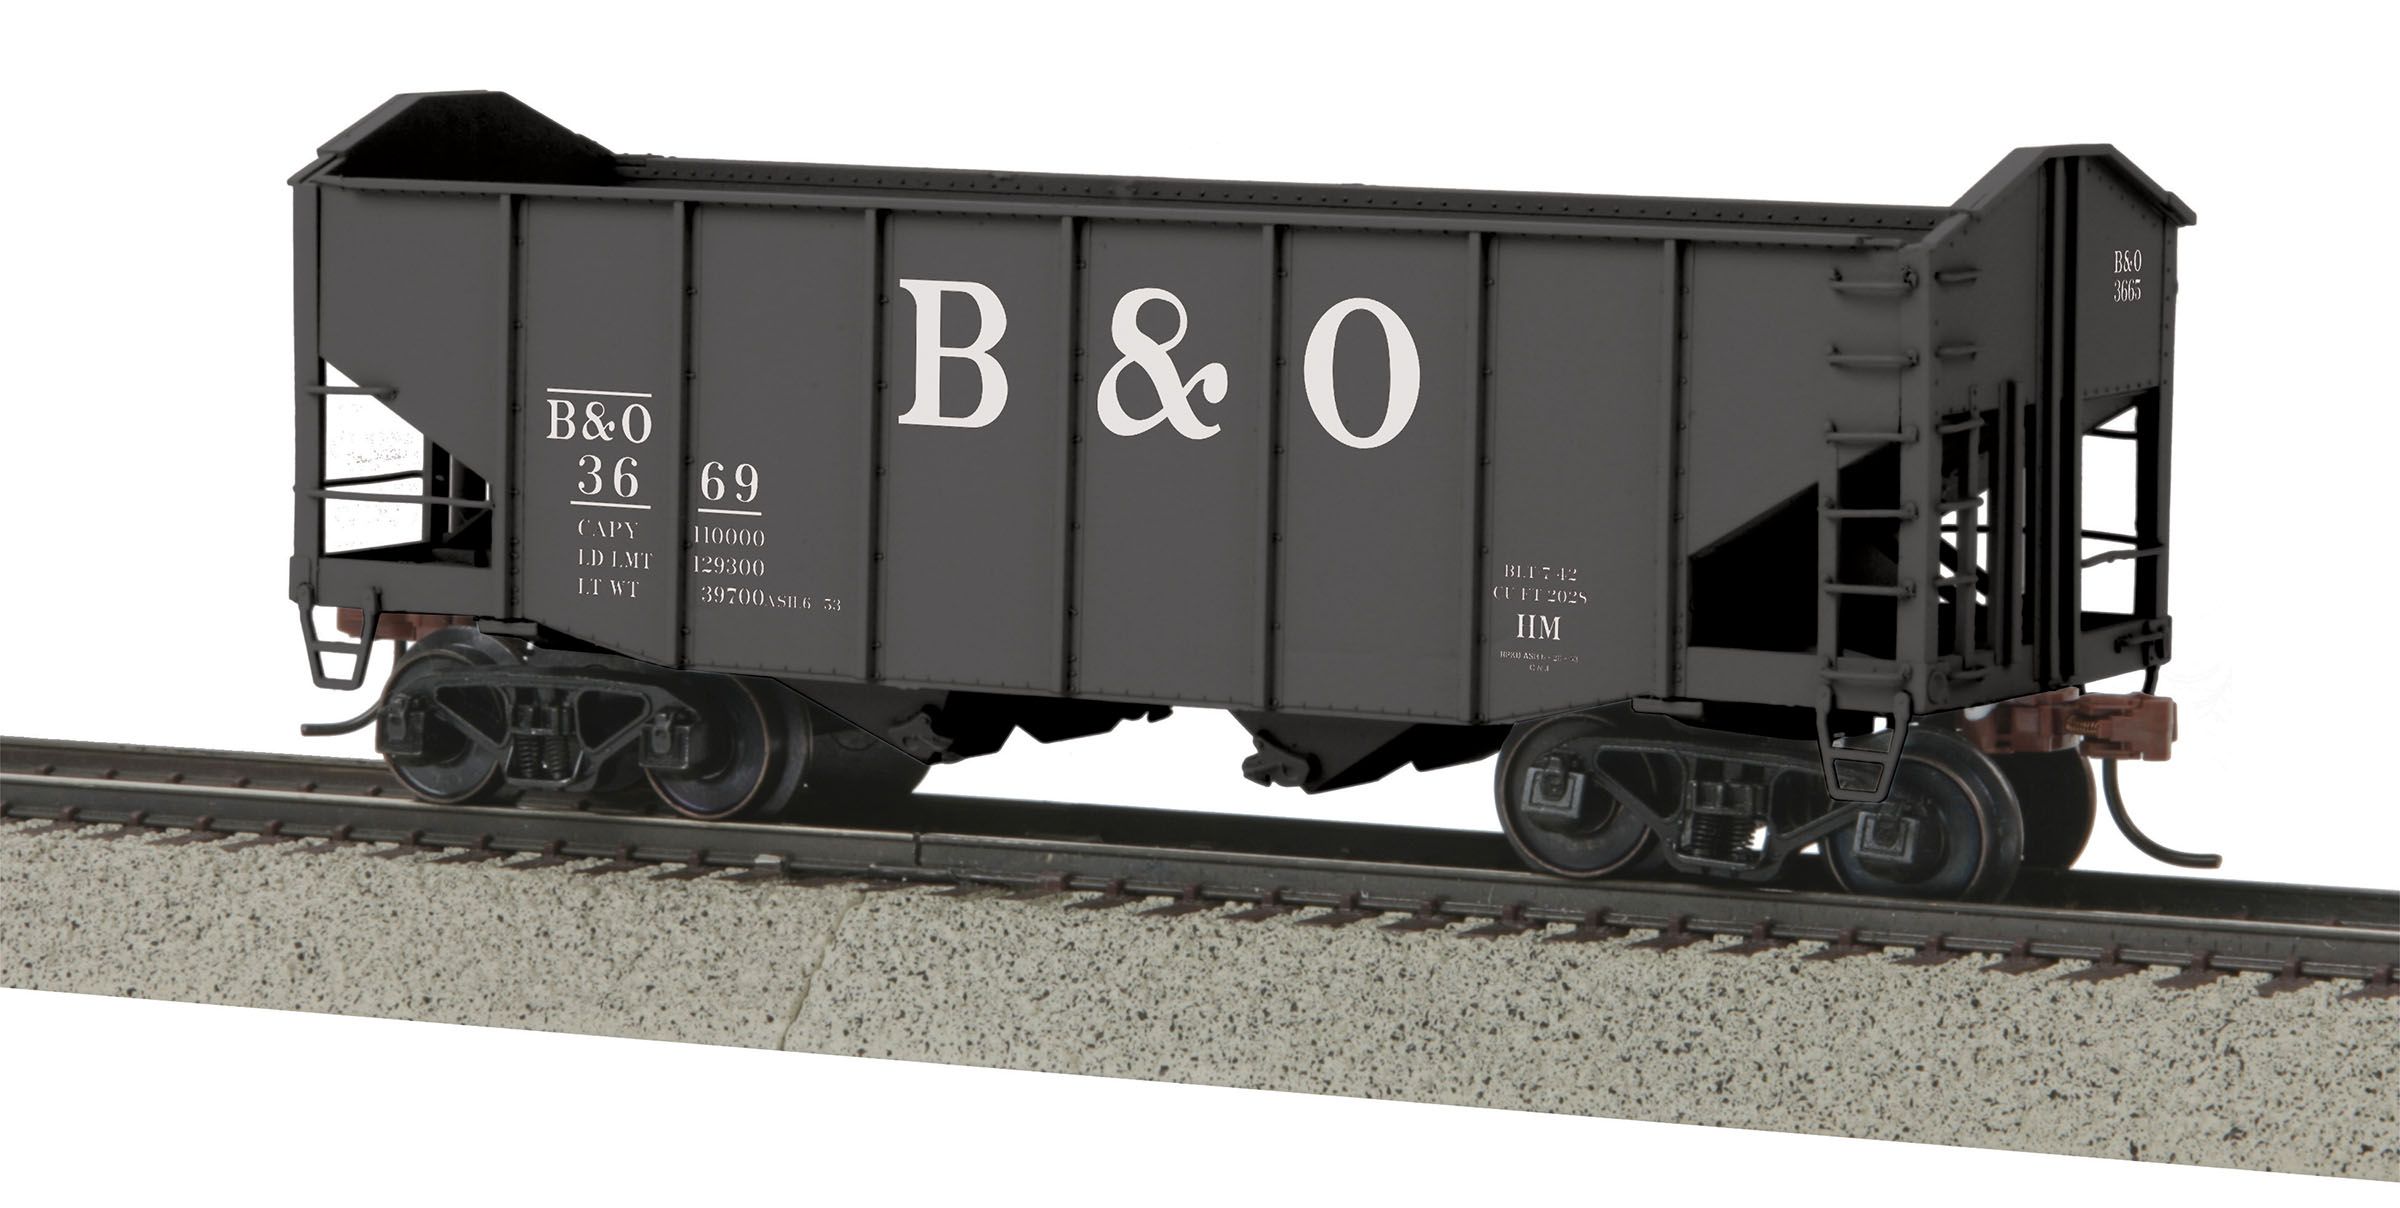 MTH 3575083 2-Bay Fish Belly Hopper Car Scale Wheels B&O #3669